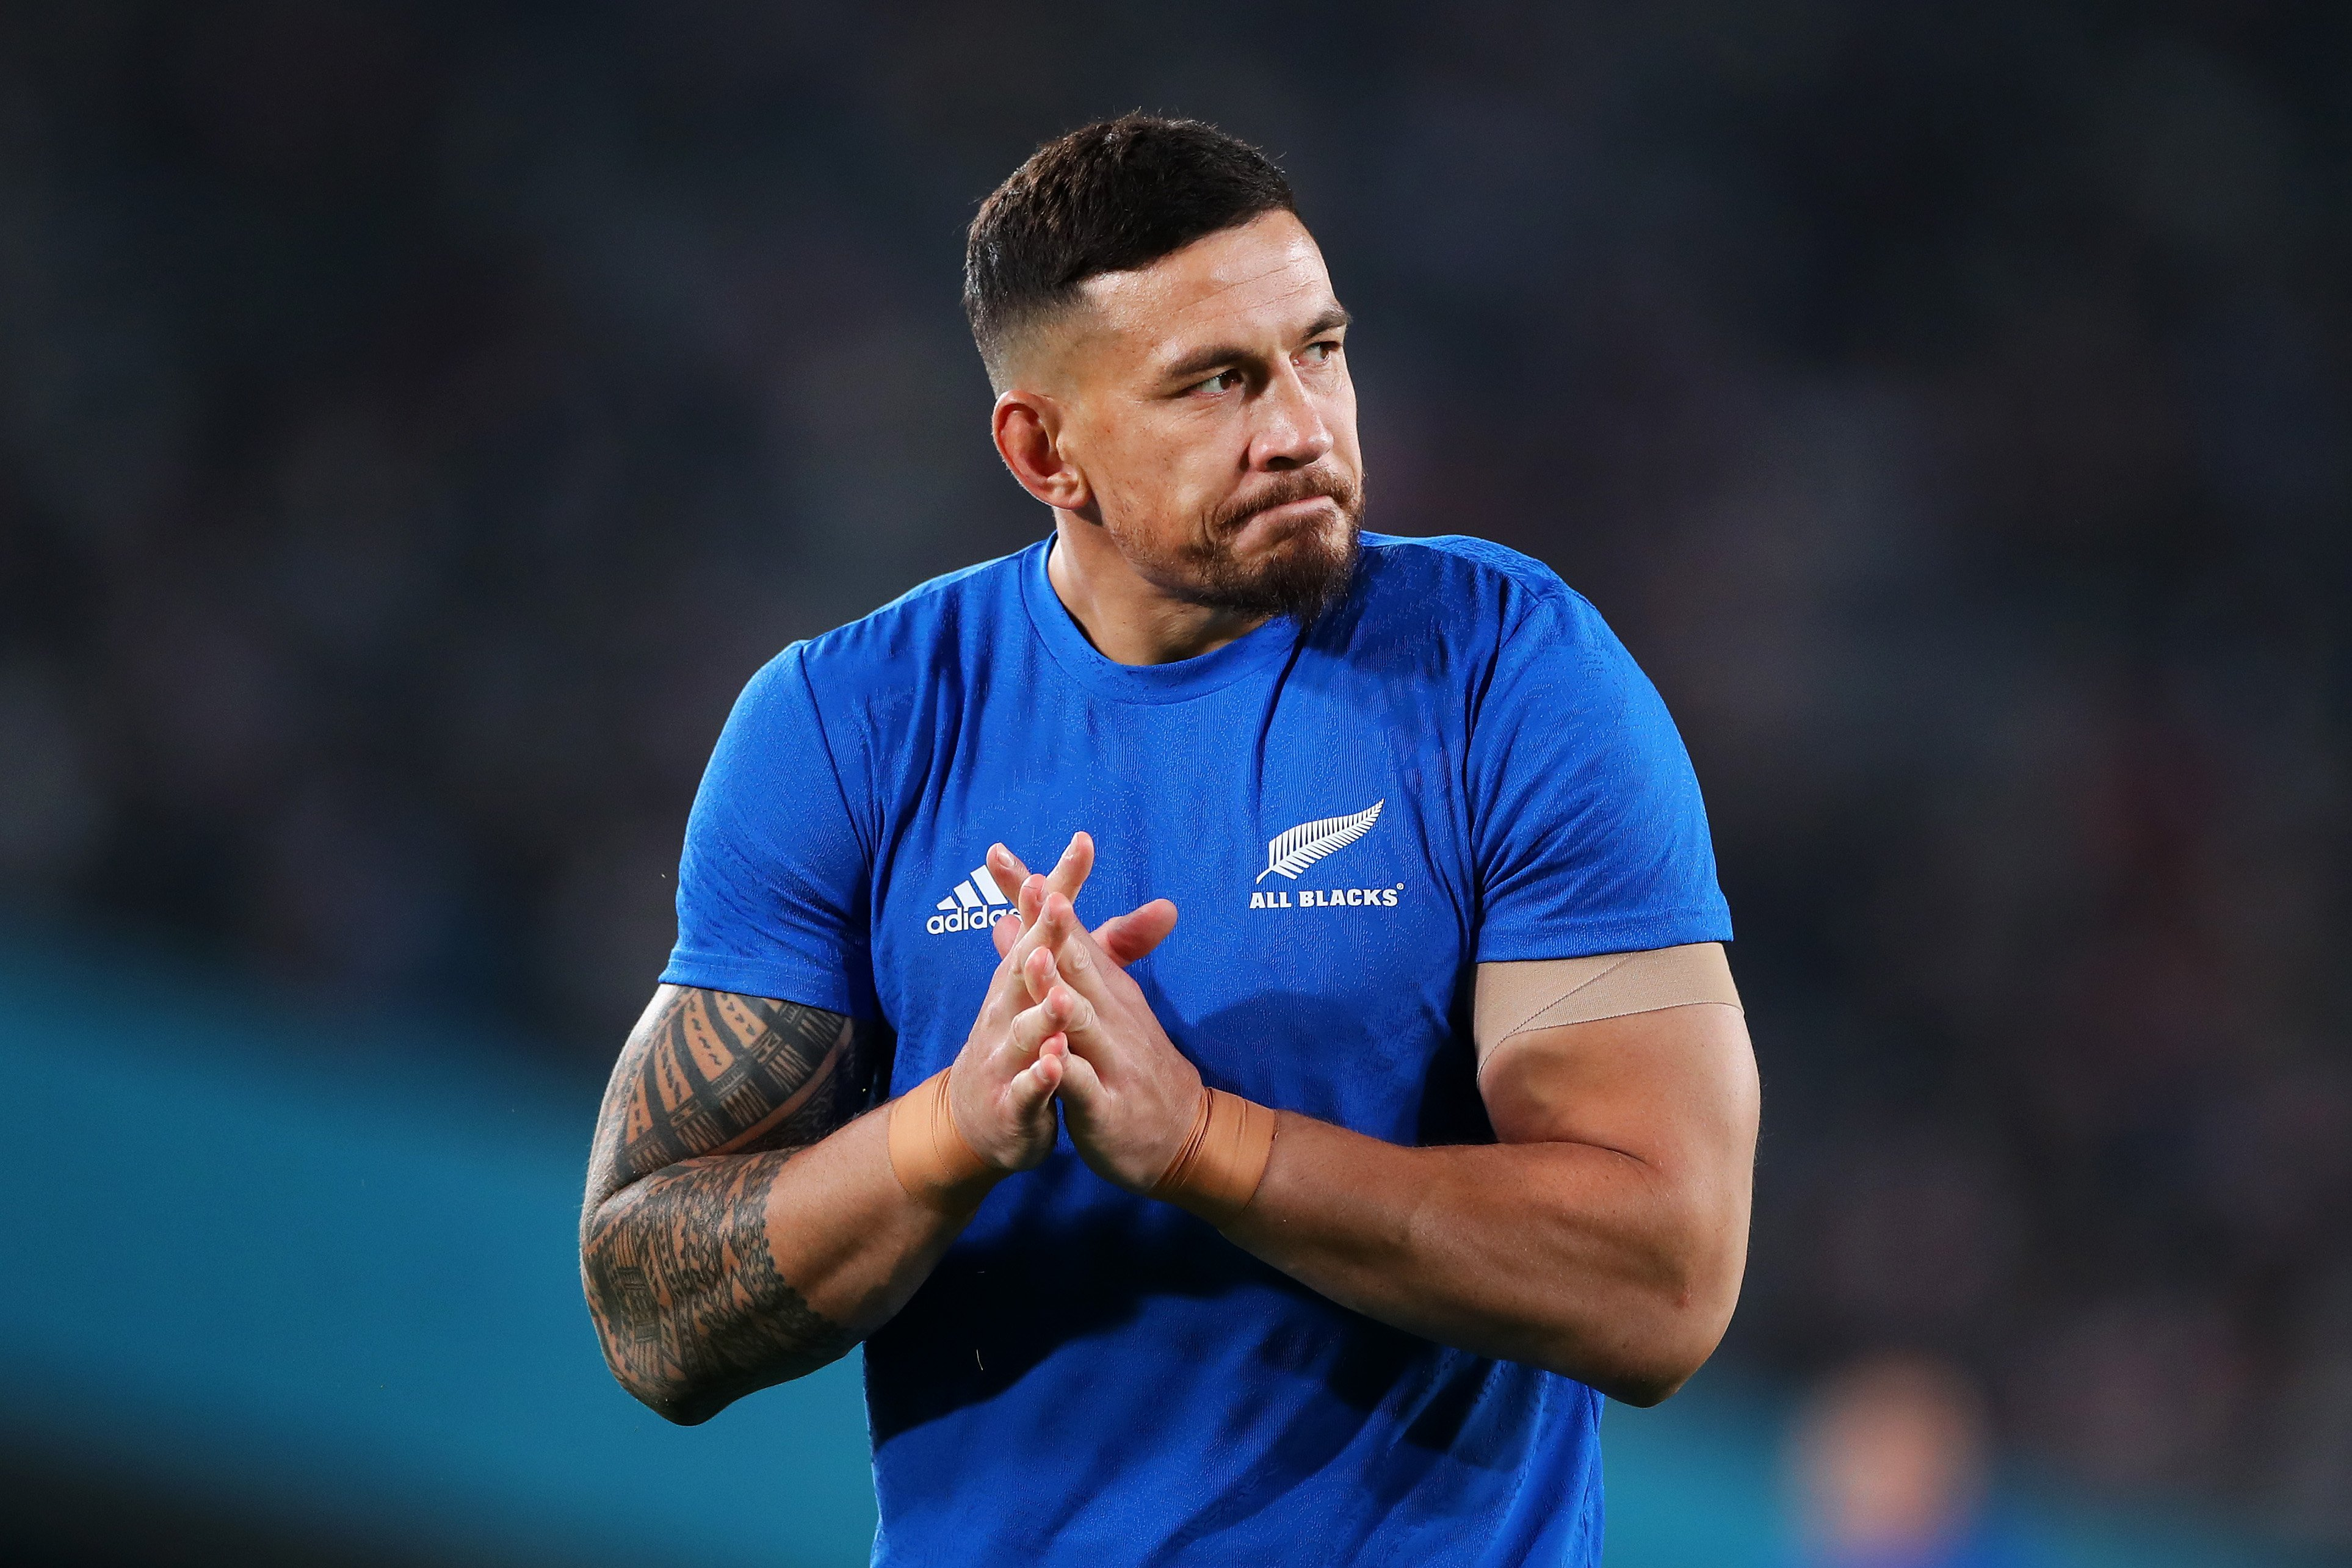 Sonny Bill Williams hoping to 'open doors' with rugby league switch